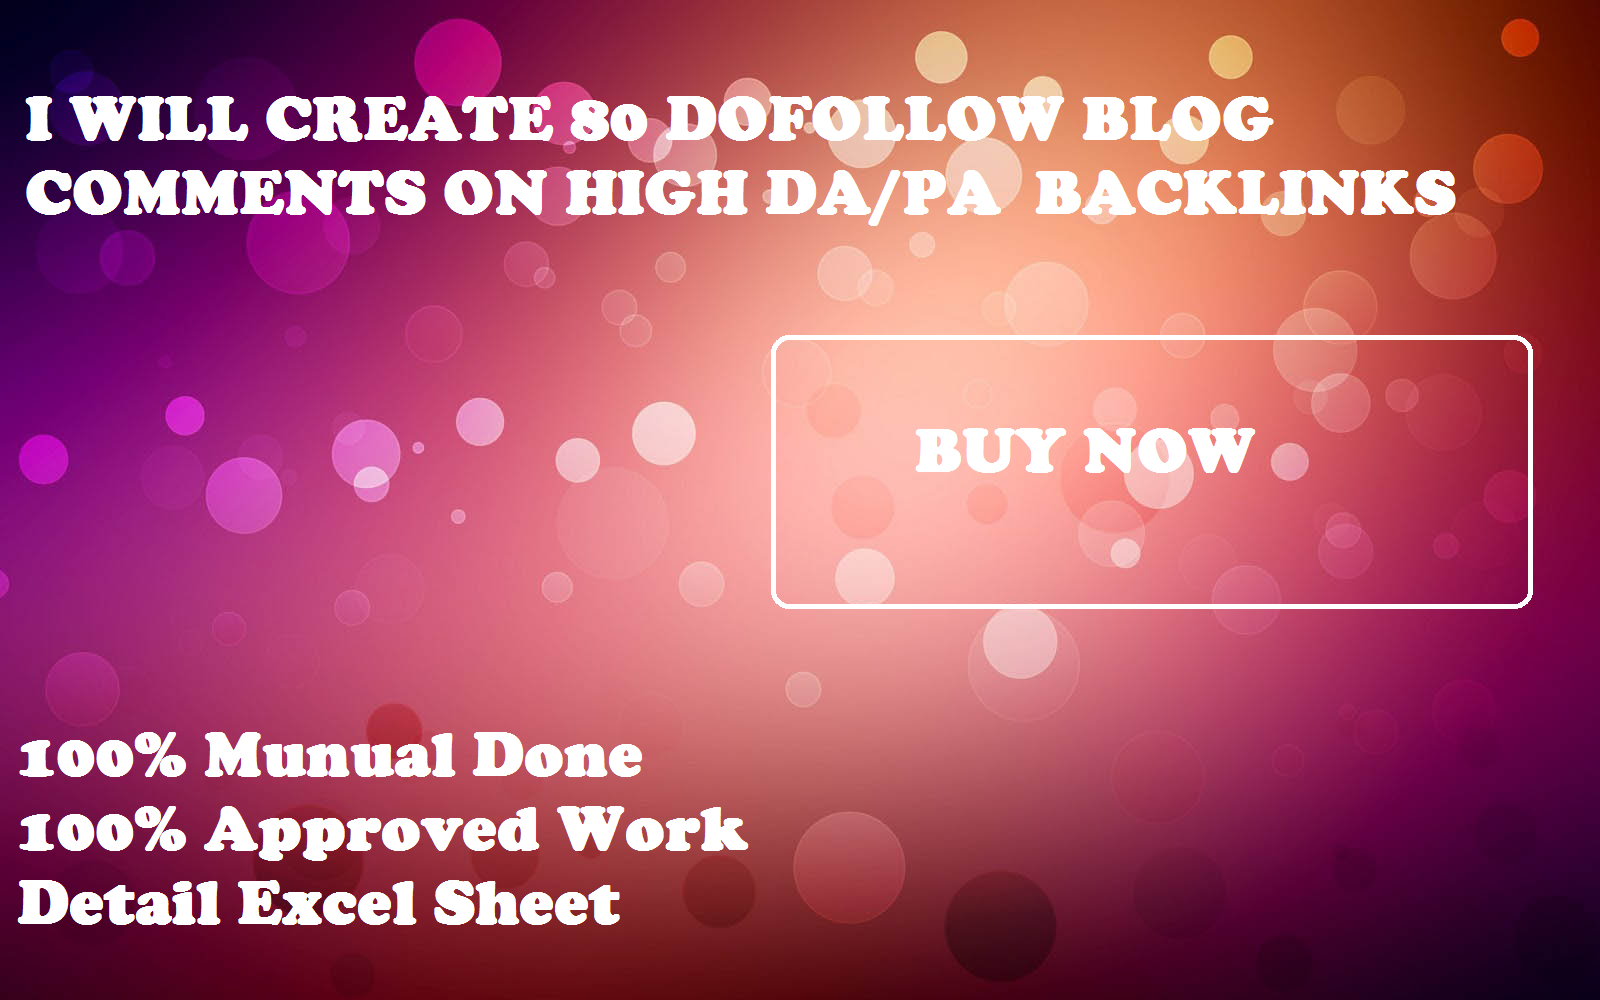 i will create 80 dofollow blog comments on high DA/PA backlinks